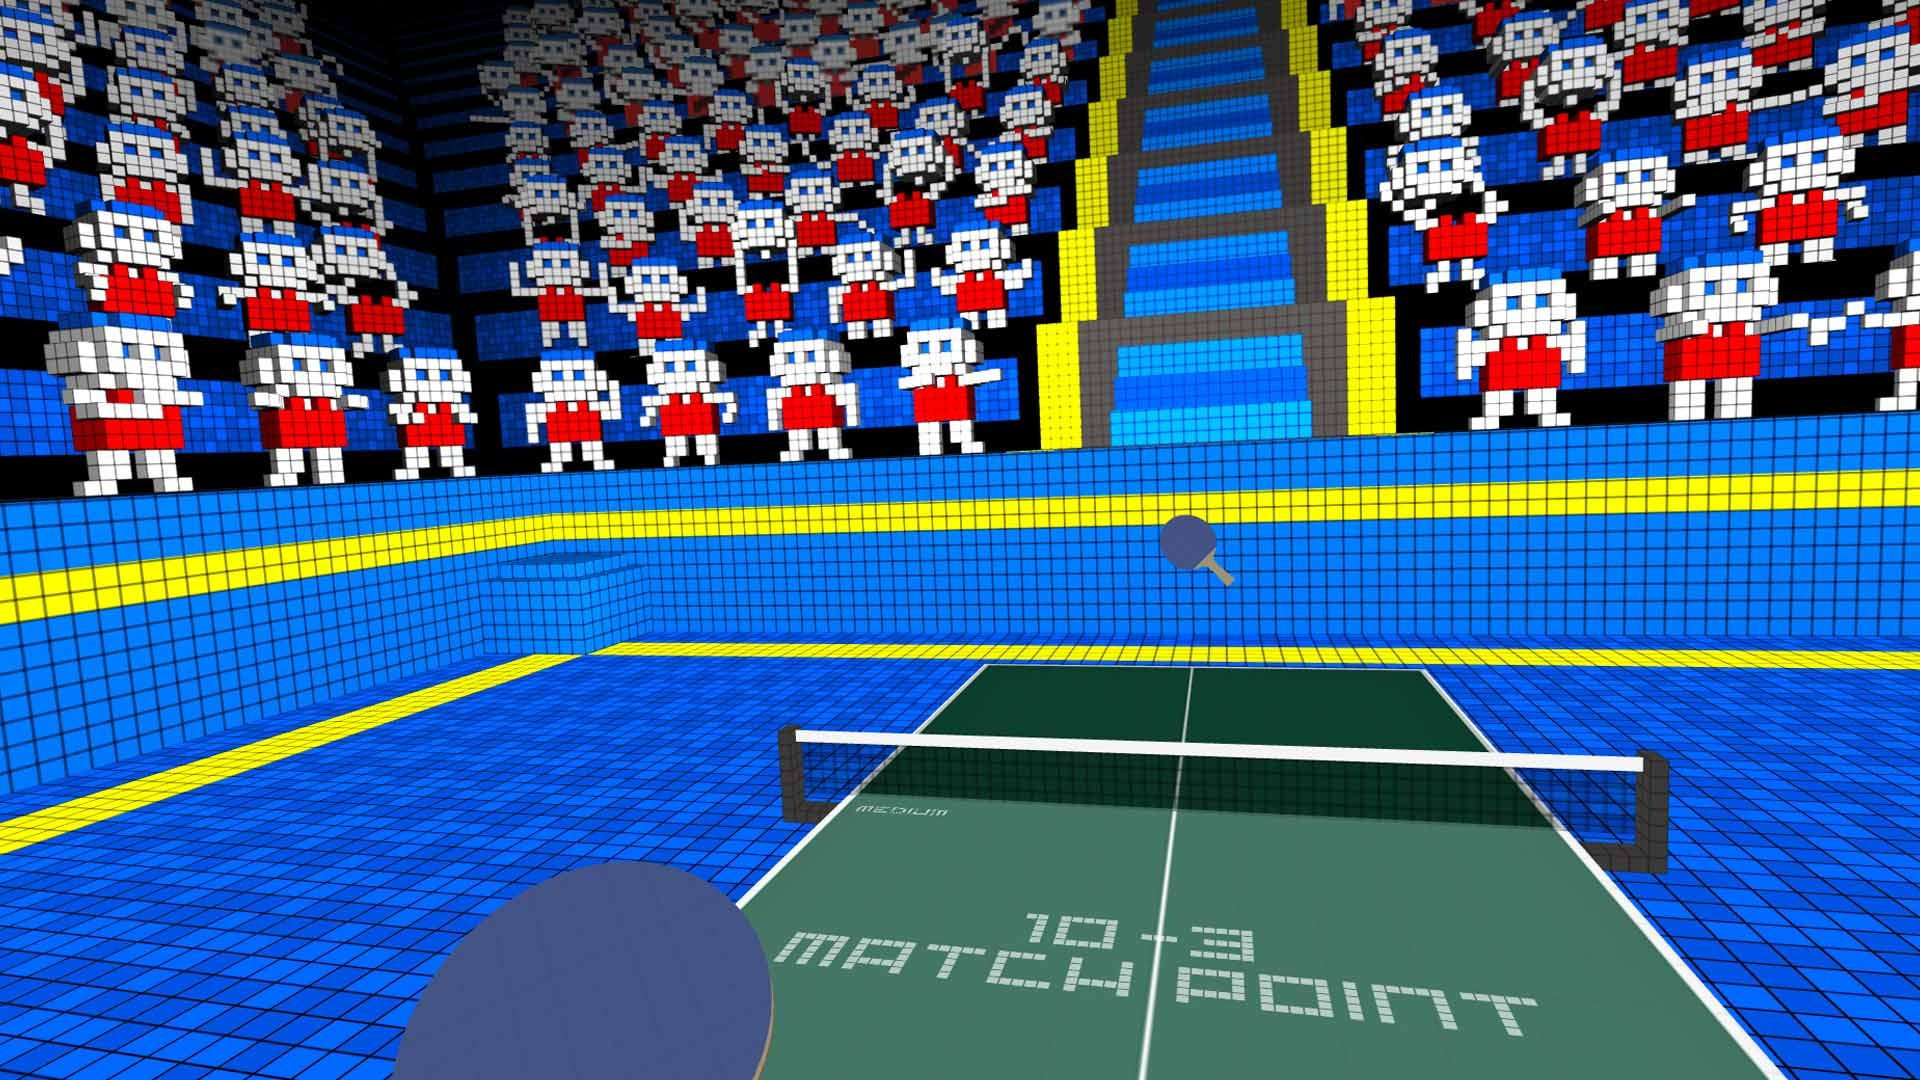 Vr Ping Pong Review Ps4 Push Square